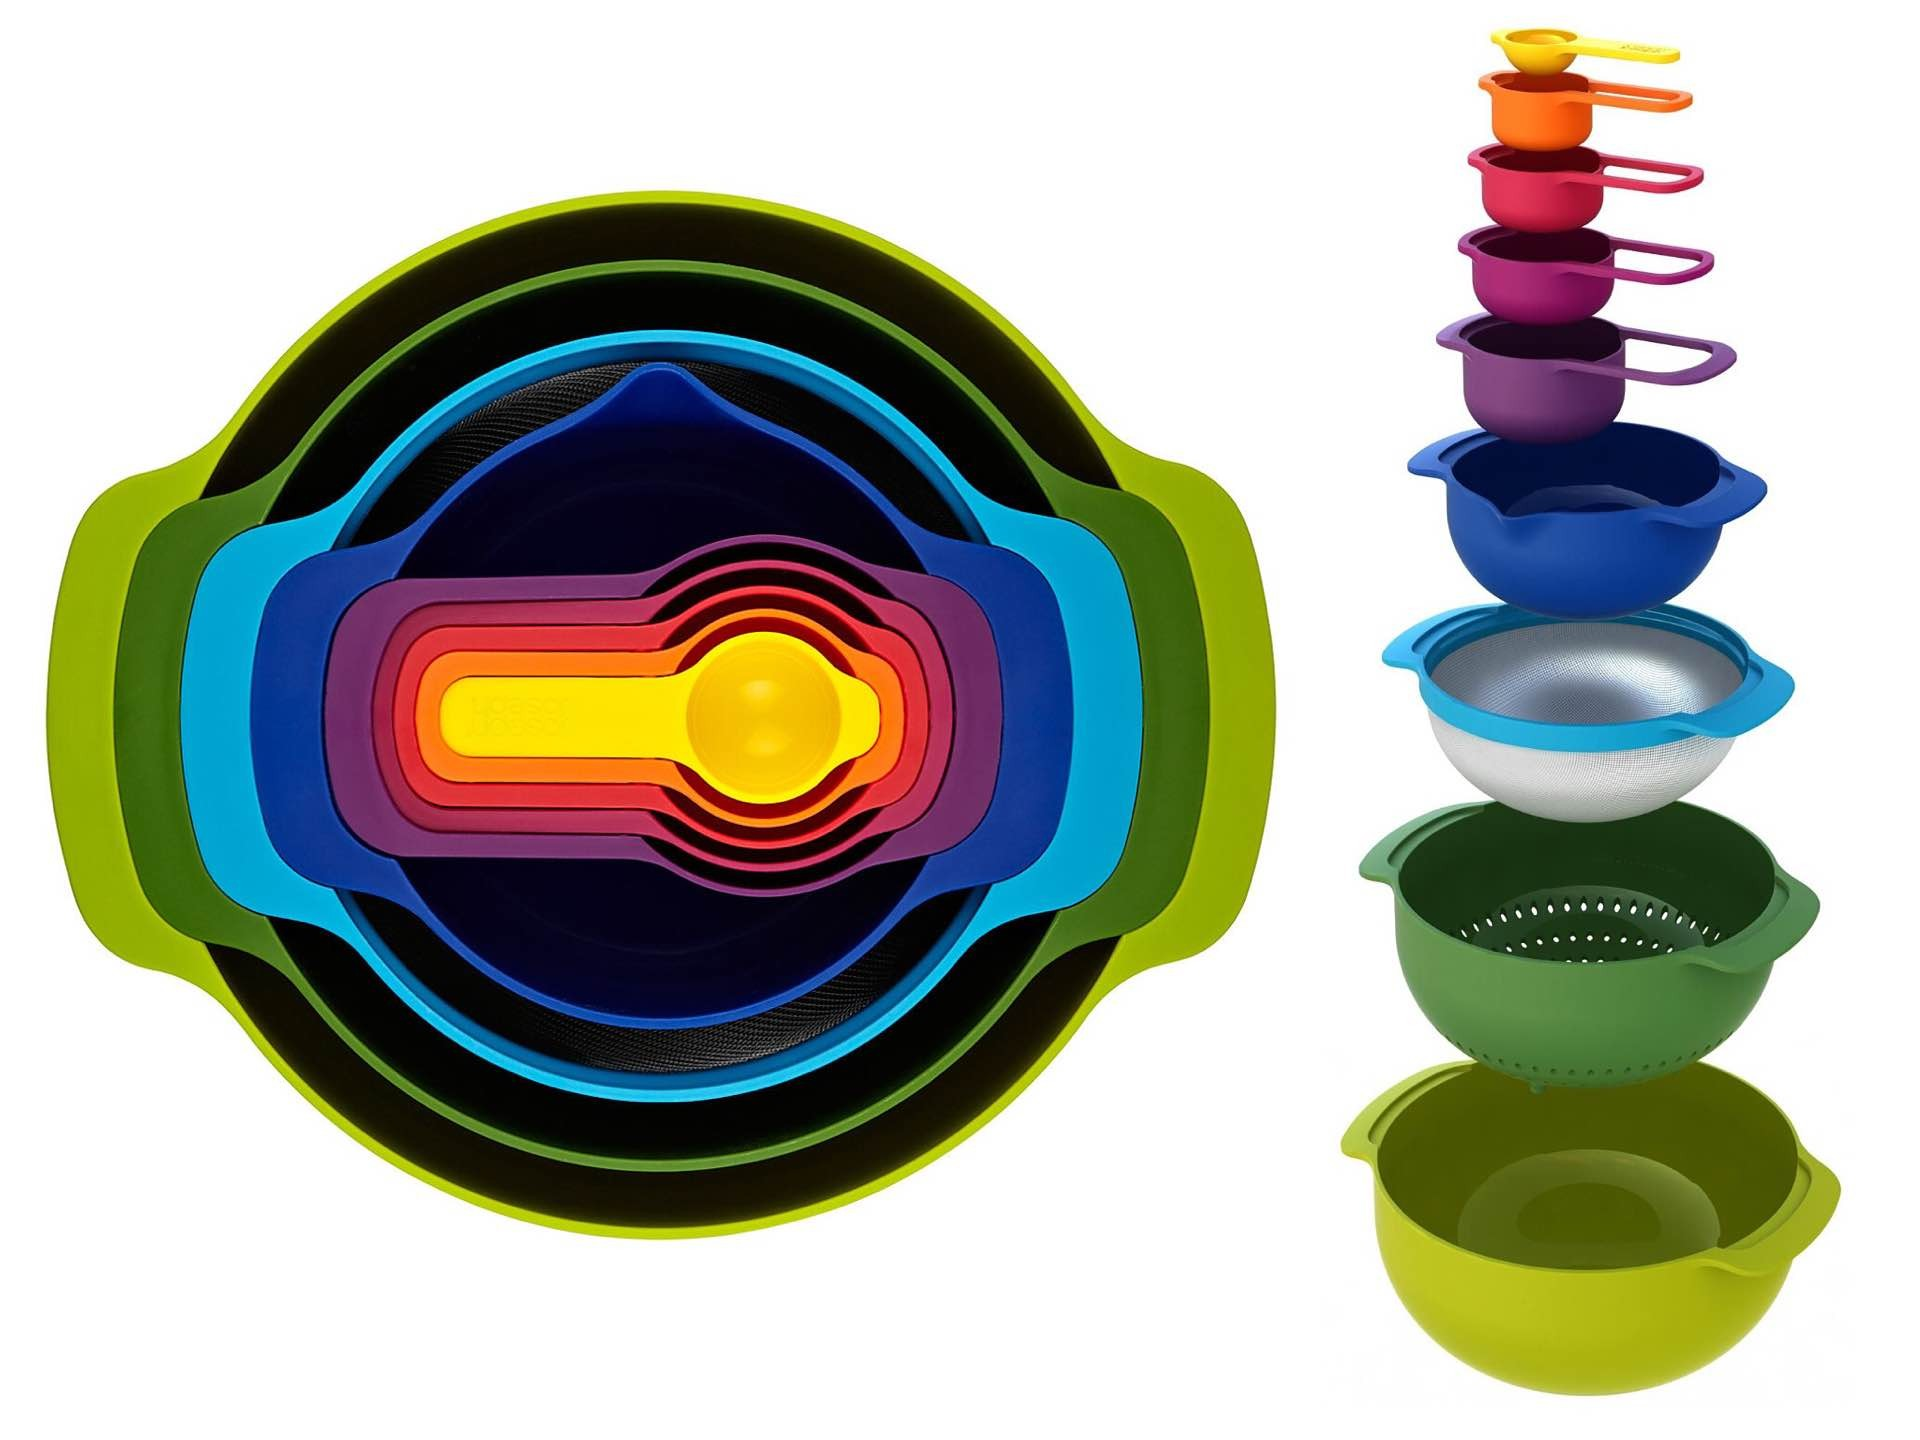 Joseph Joseph's 9-piece nesting food prep + measuring set ($38)